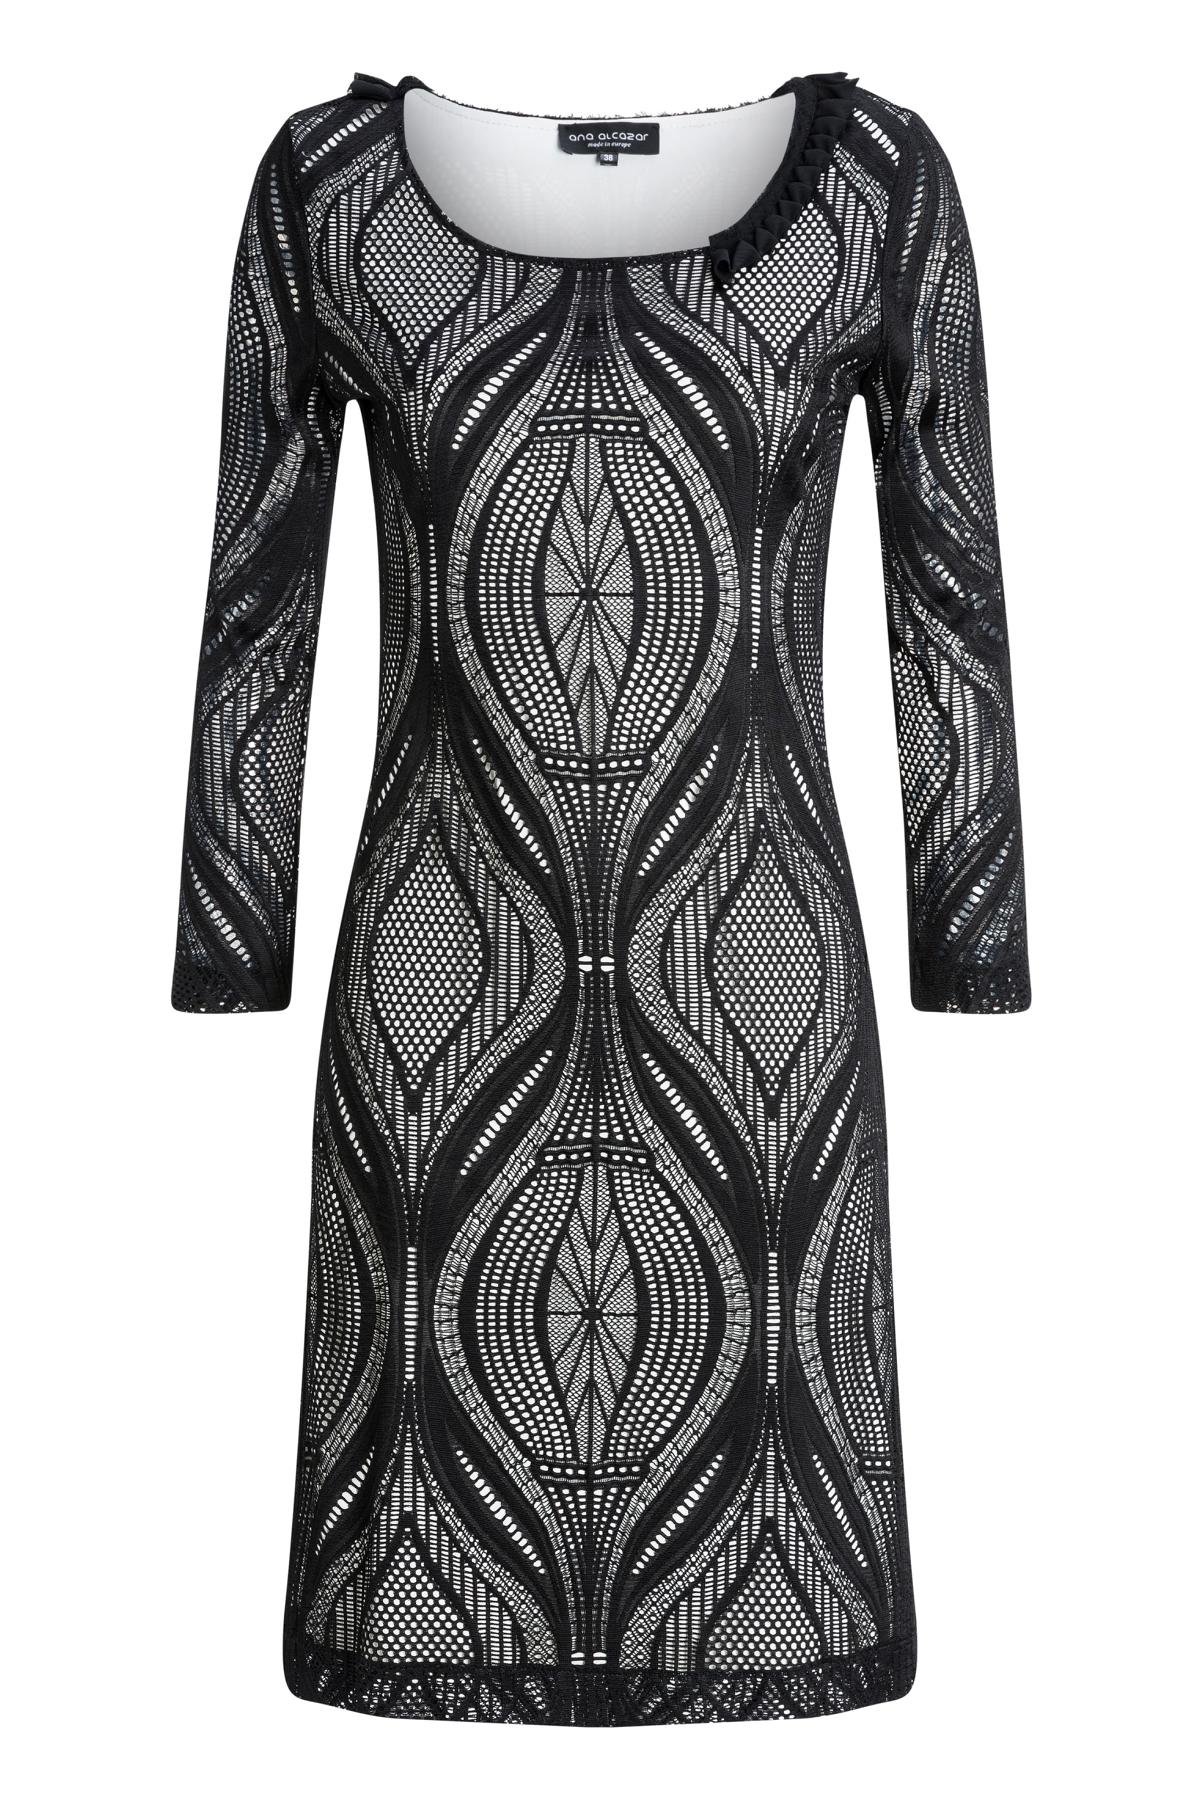 Ana Alcazar Sleeve Dress Mulay